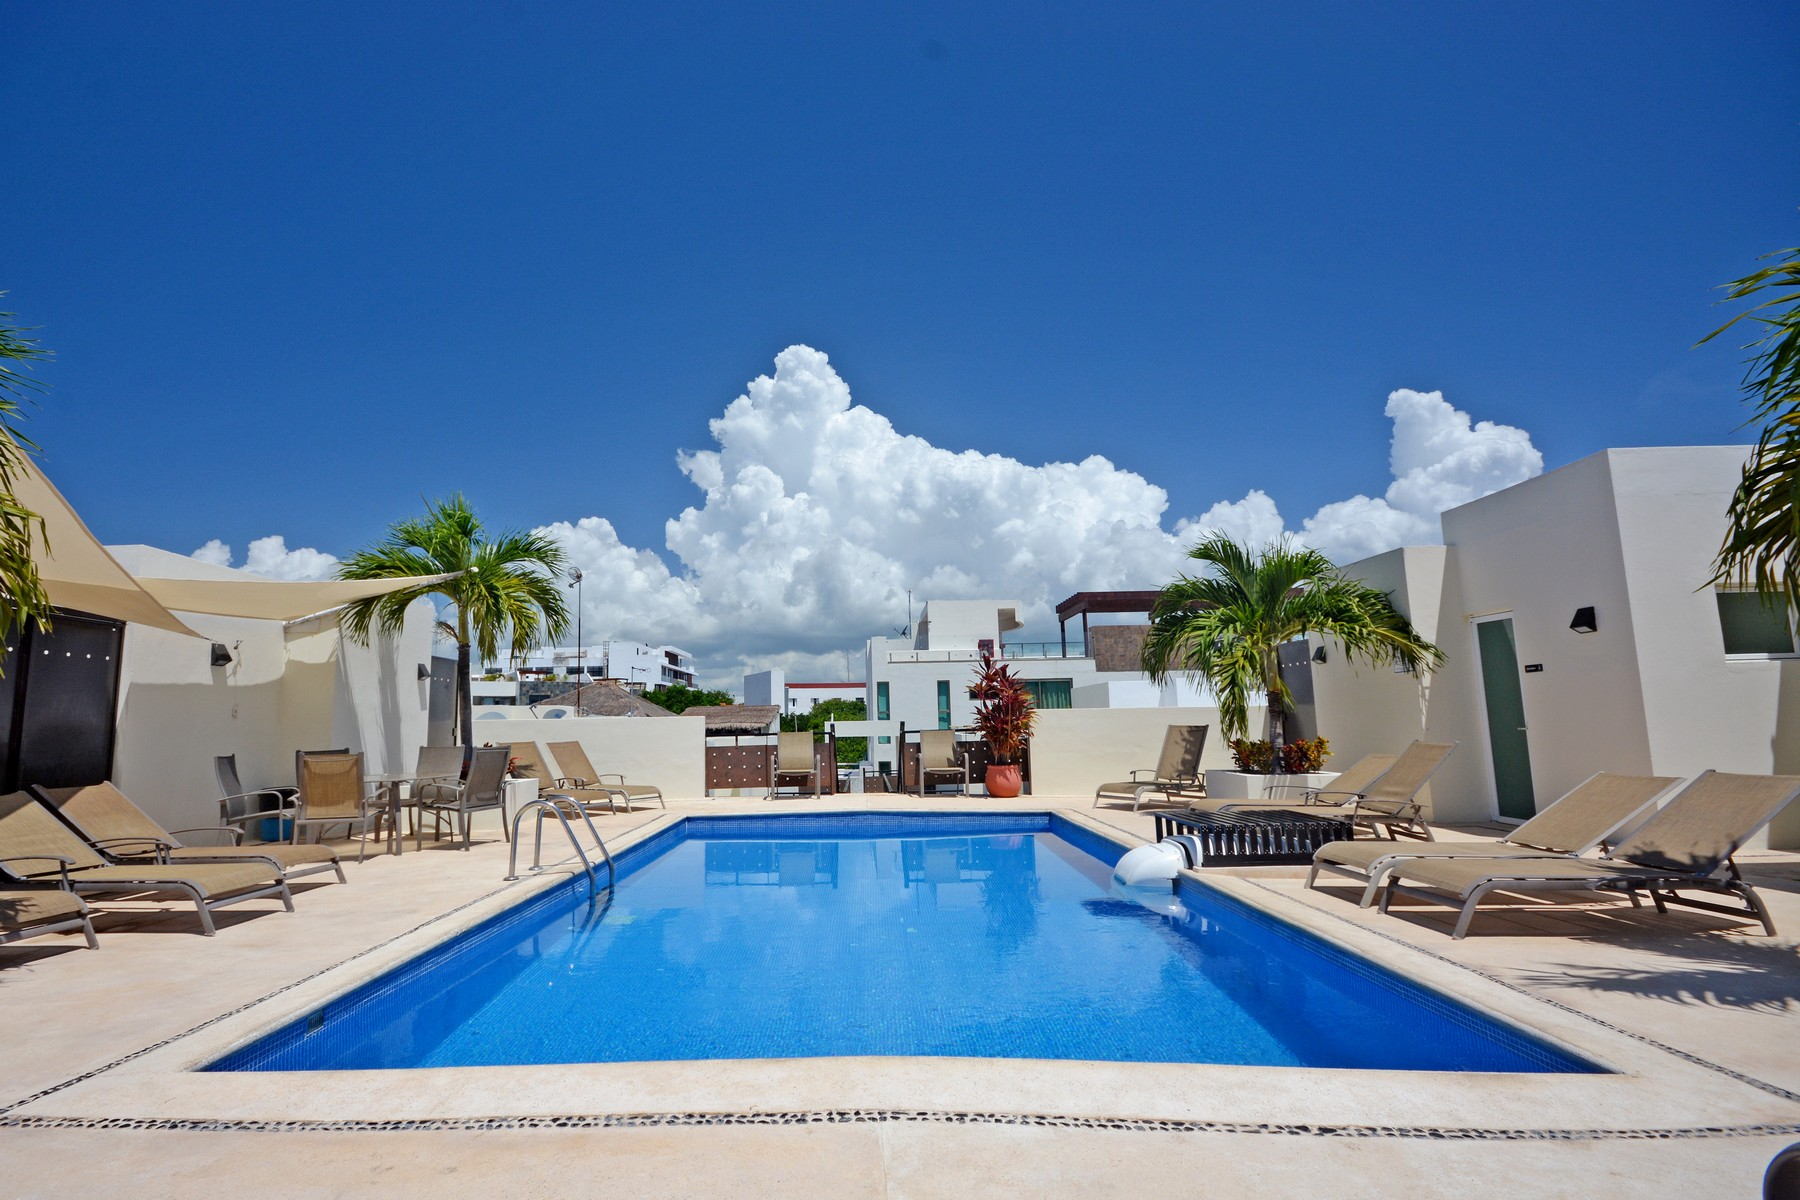 Condominium for Sale at CARIBBEAN STYLE PENTHOUSE 42nd Street, between Cozumel Avenue & 1st Avenue L-001, Mza 157 Playa Del Carmen, Quintana Roo 77710 Mexico